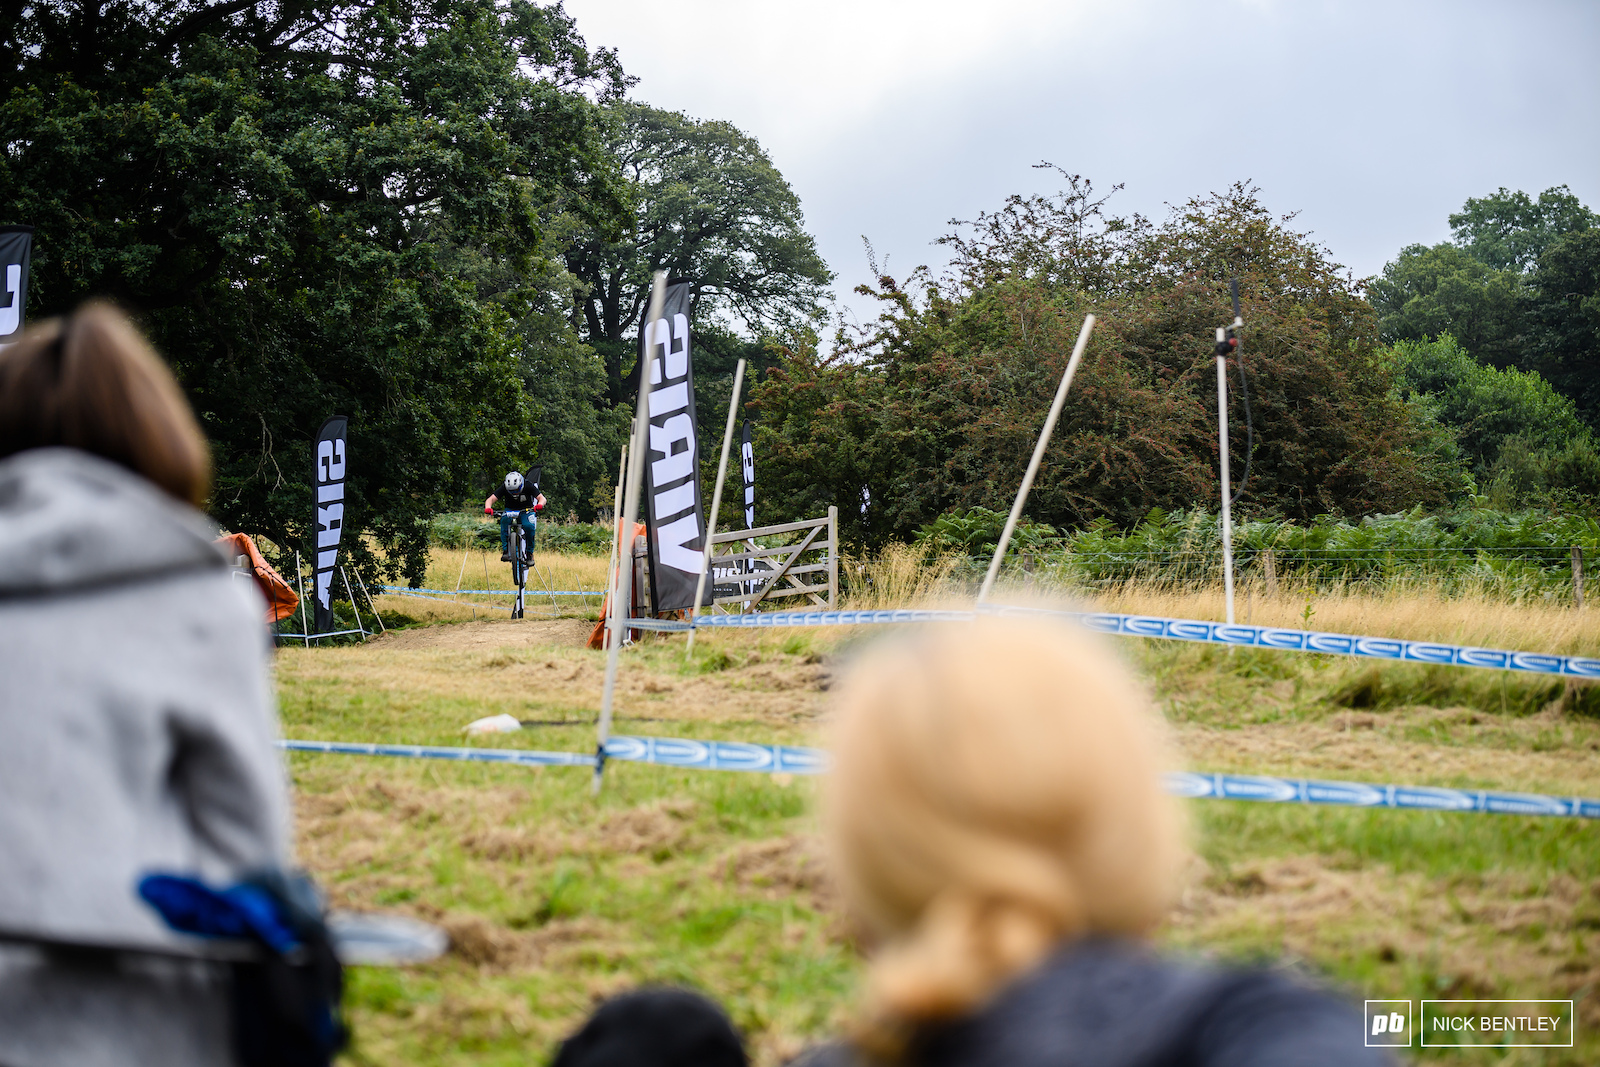 The Viris Bomb-Hole jump is a Malvern s legend all in it s own right and most of the crowd gathered at this point on the classic DH Track